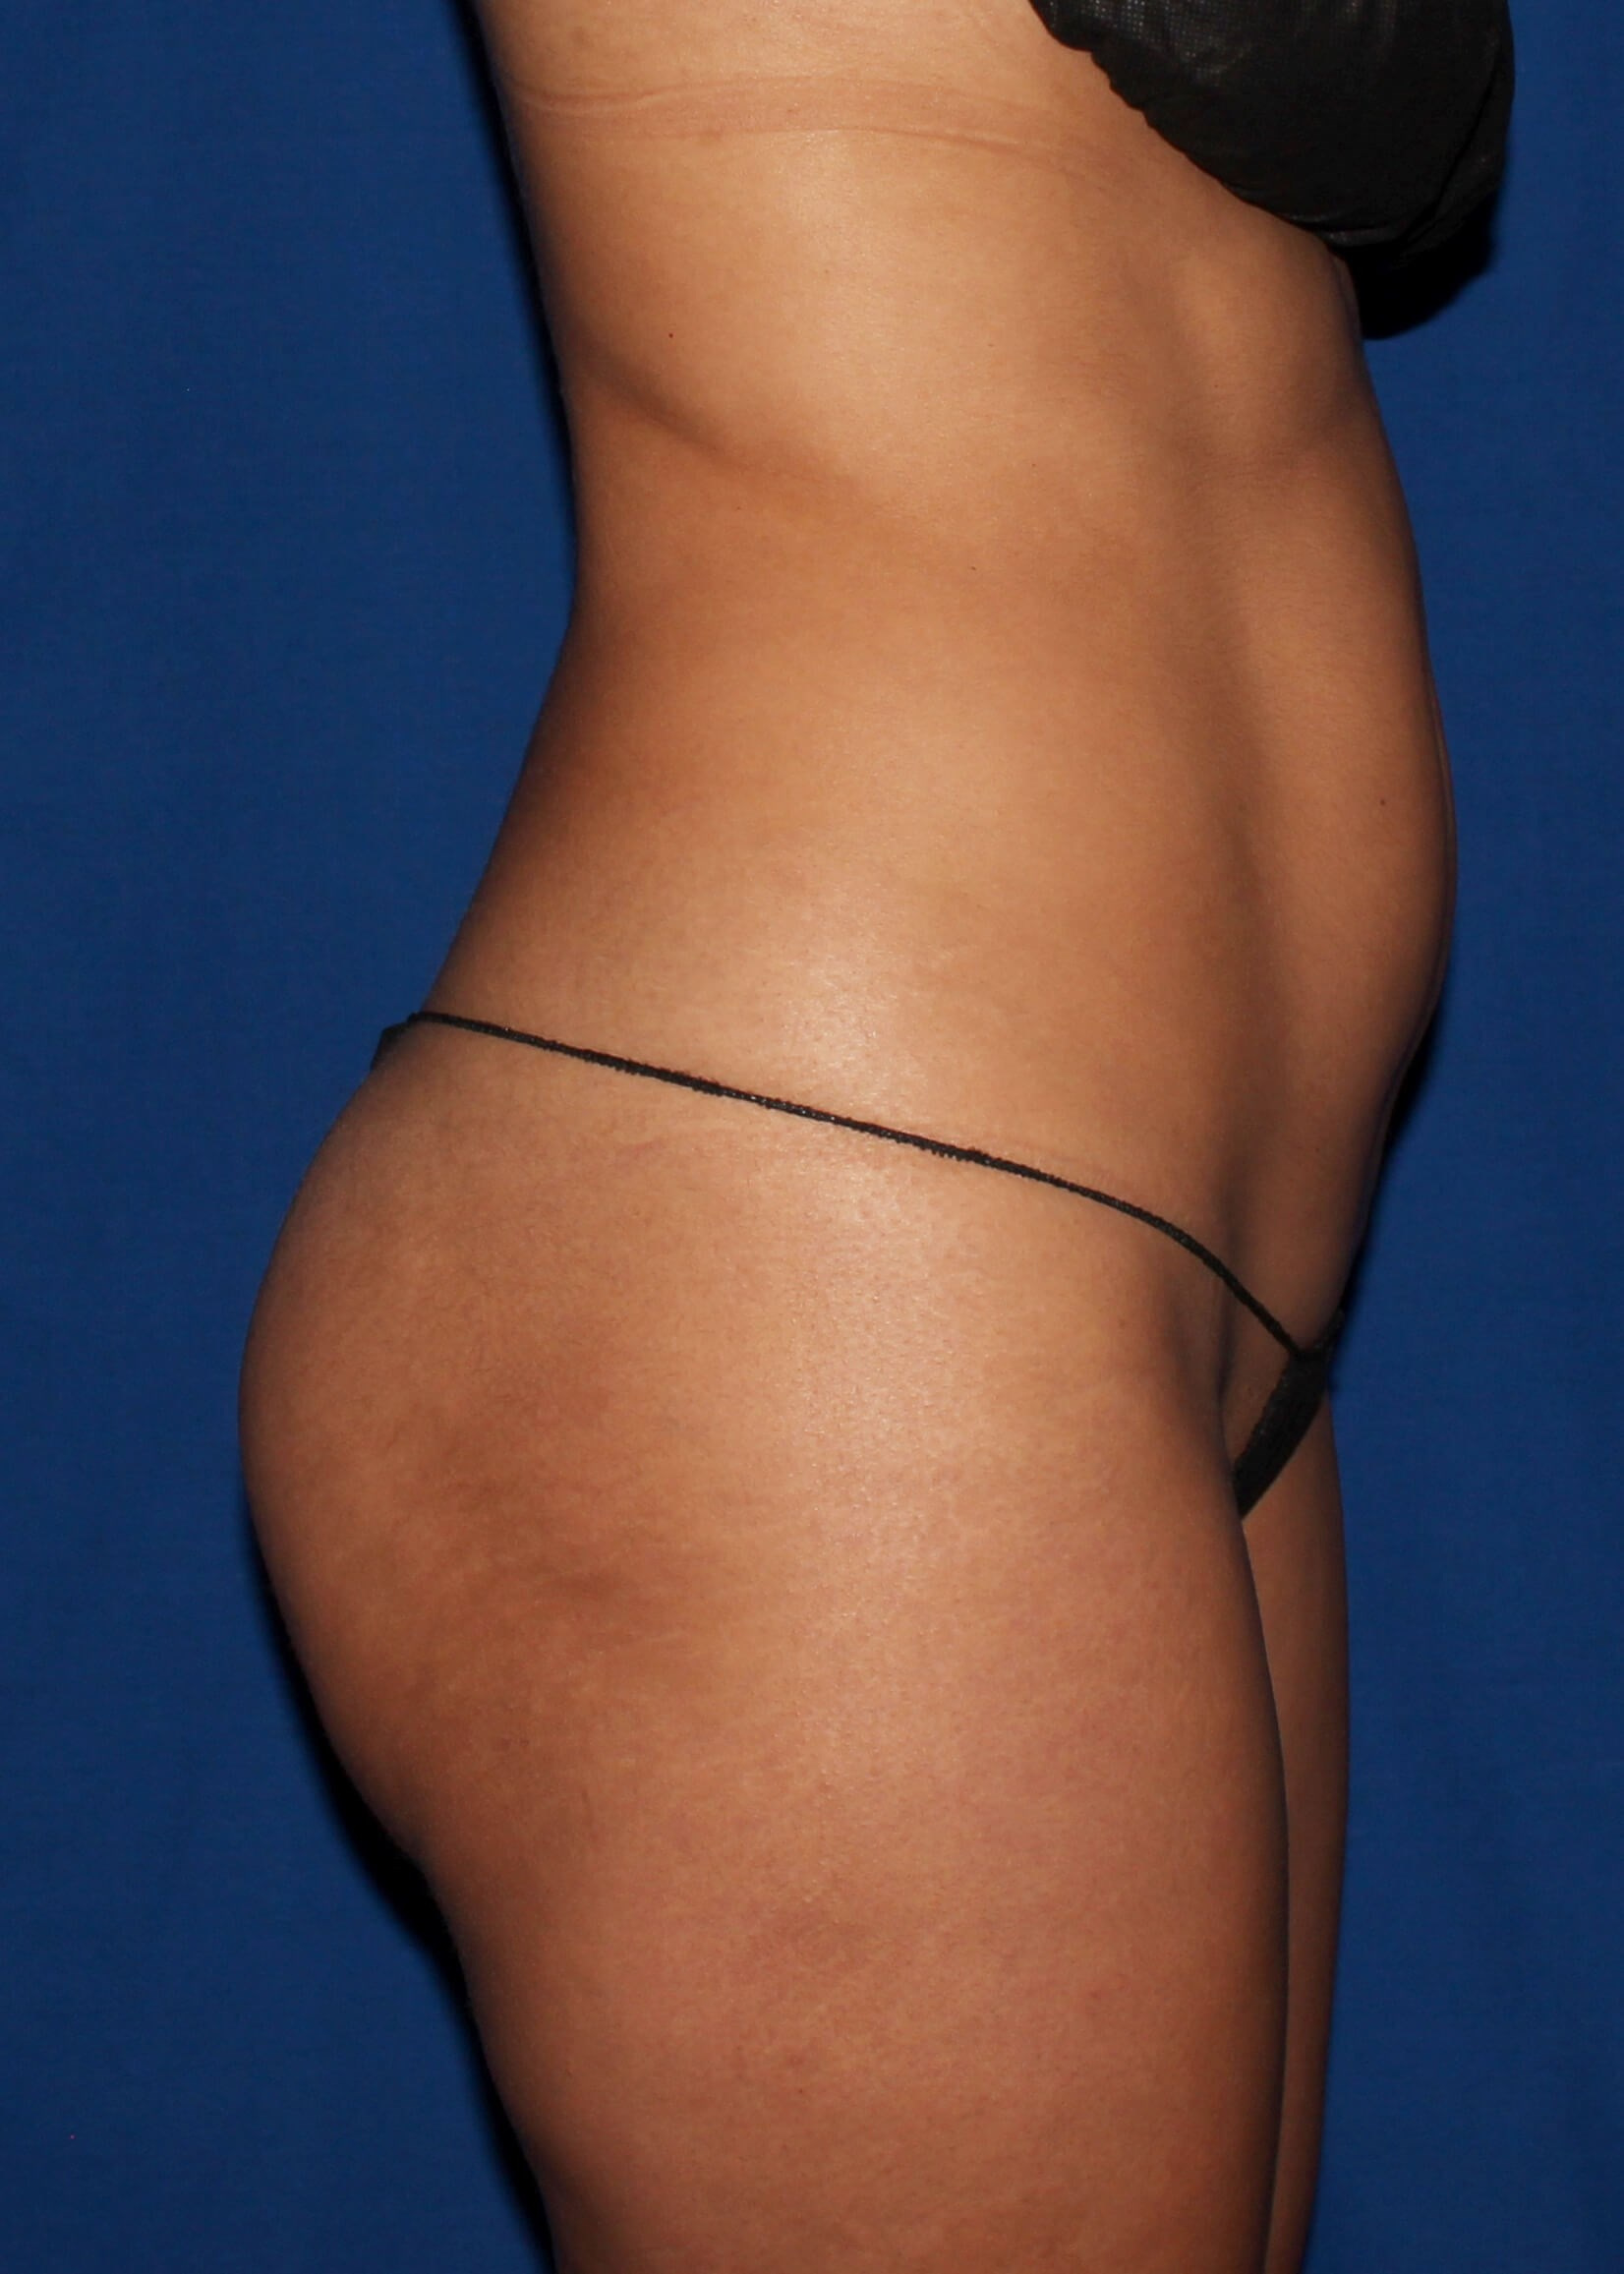 Full Torso Lipo Before Right View - Right View